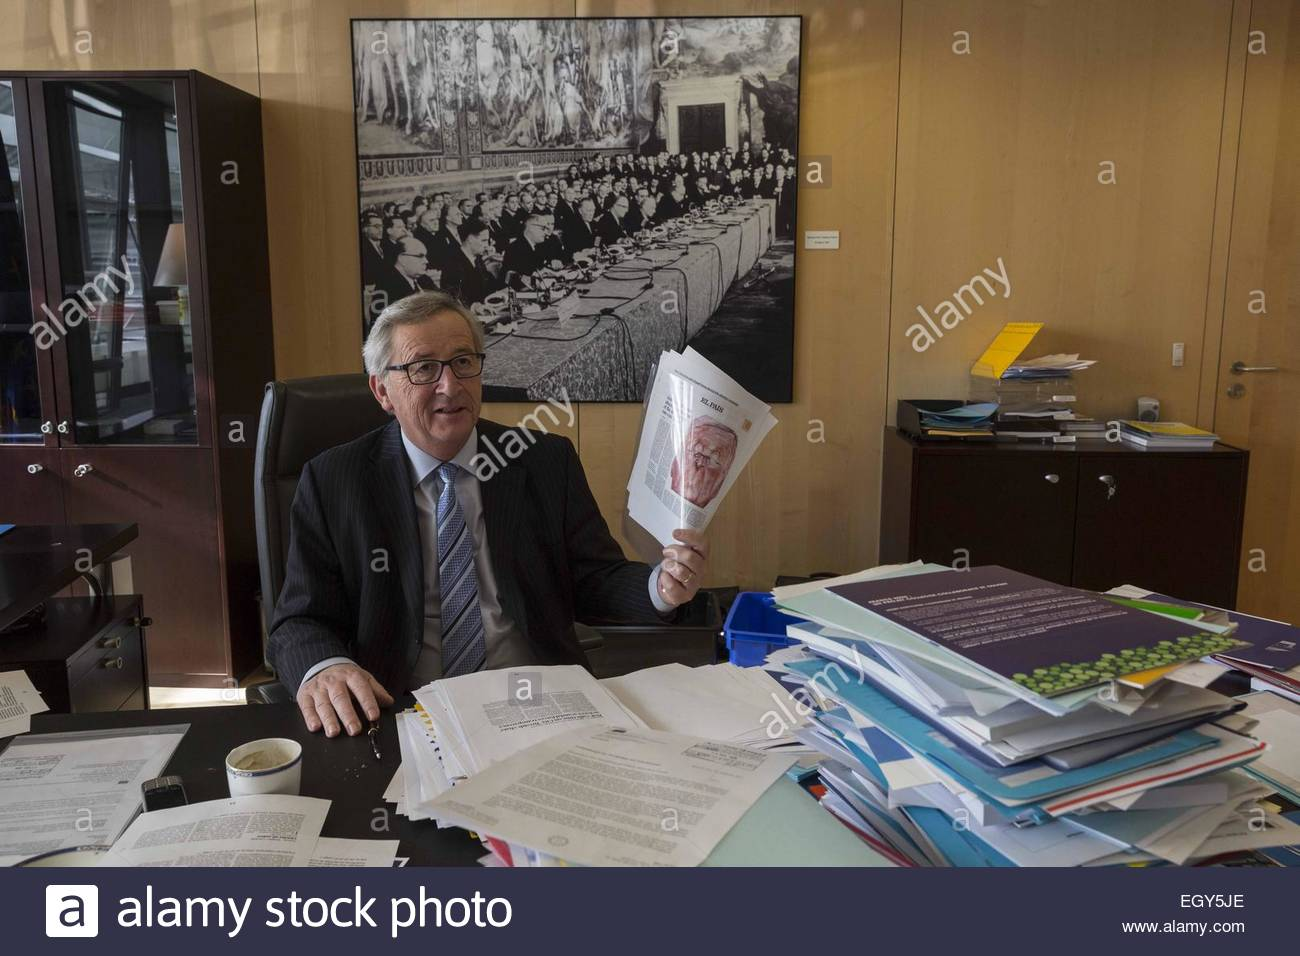 Brussels belgium 27th feb 2015 european commission president stock photo royalty free image - European commission office ...